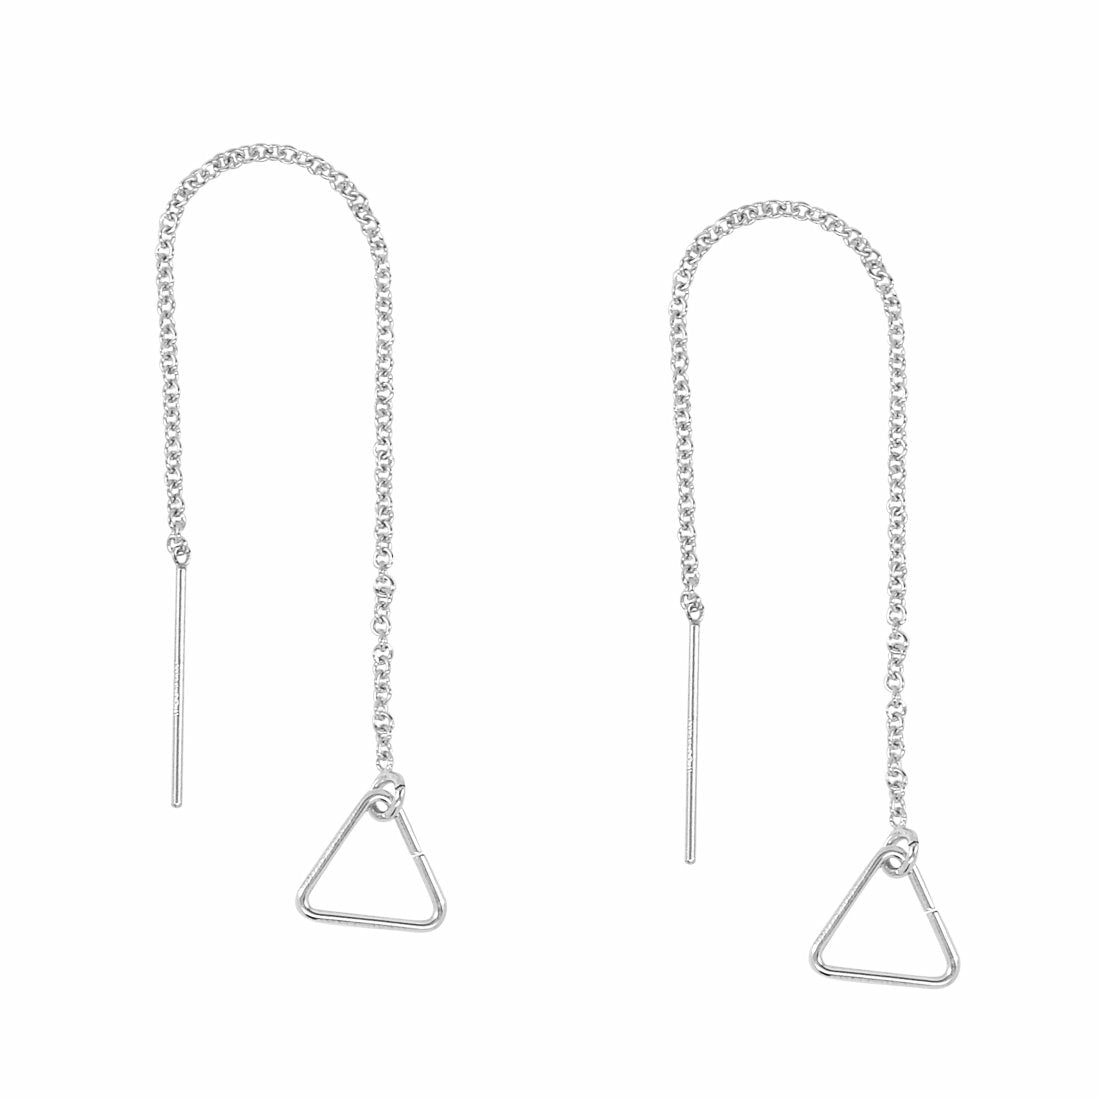 Geometric Ear Threaders